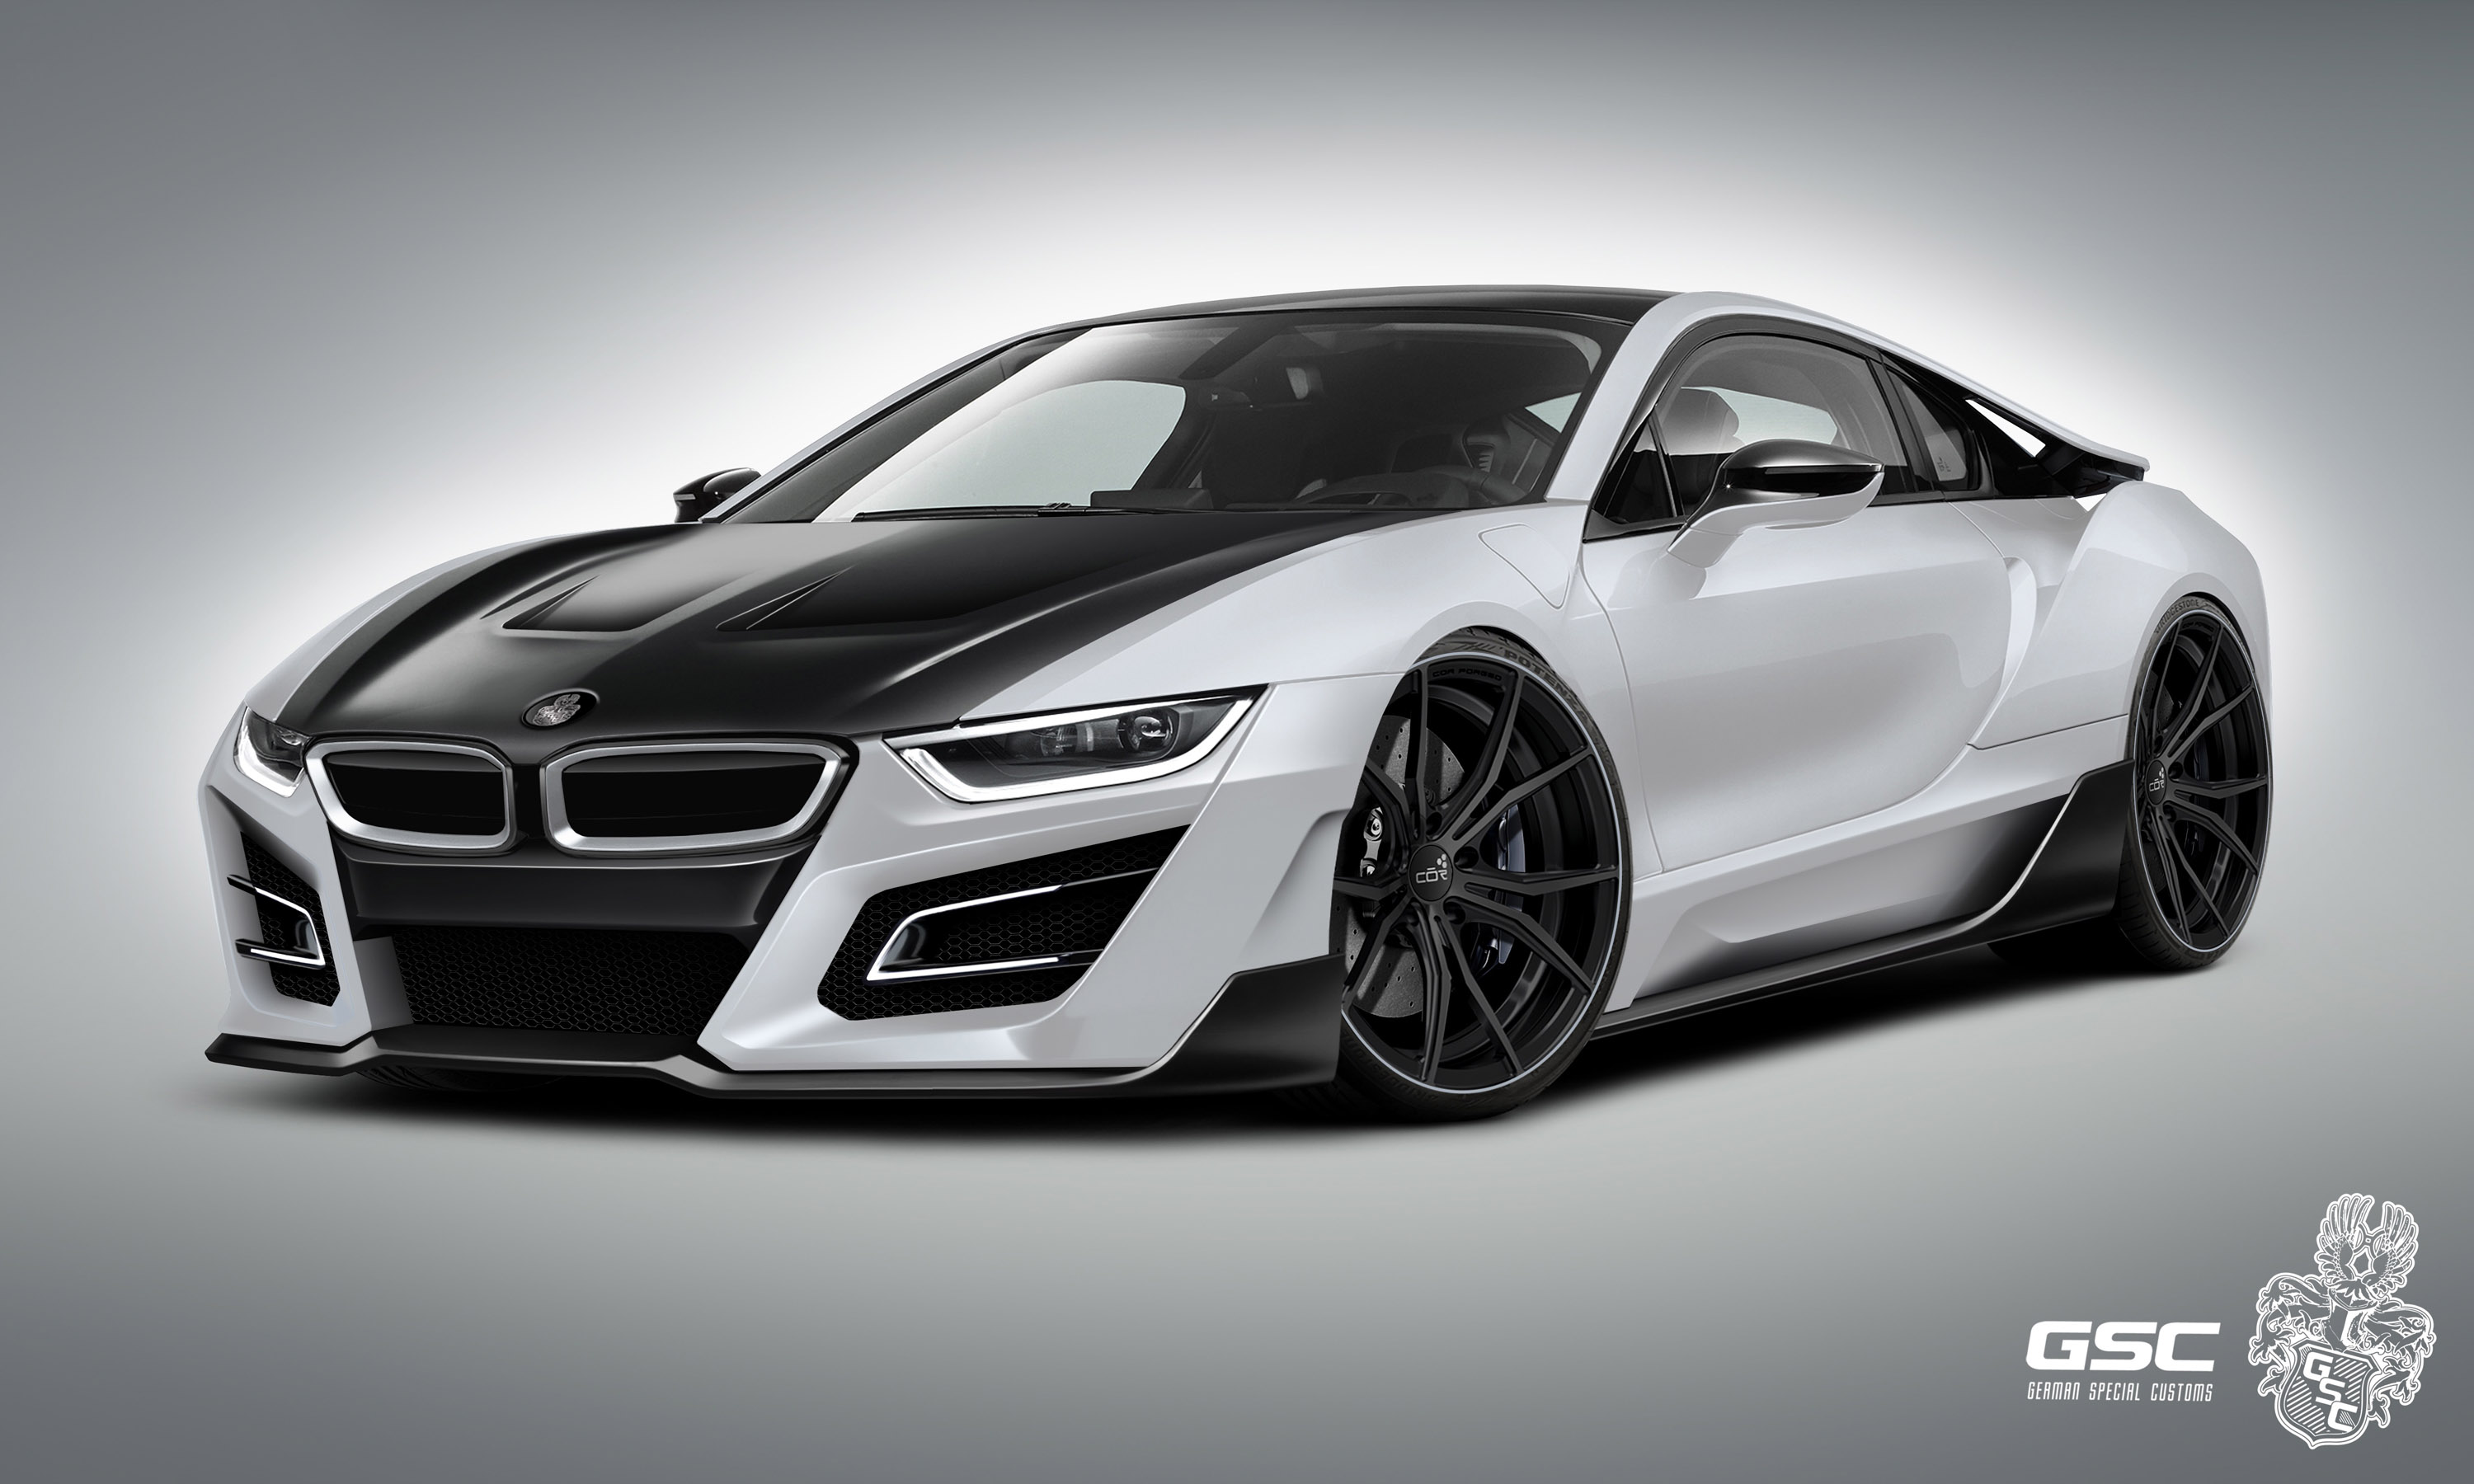 Worksheet. German Special Customs Previews the BMW i8 iTRON